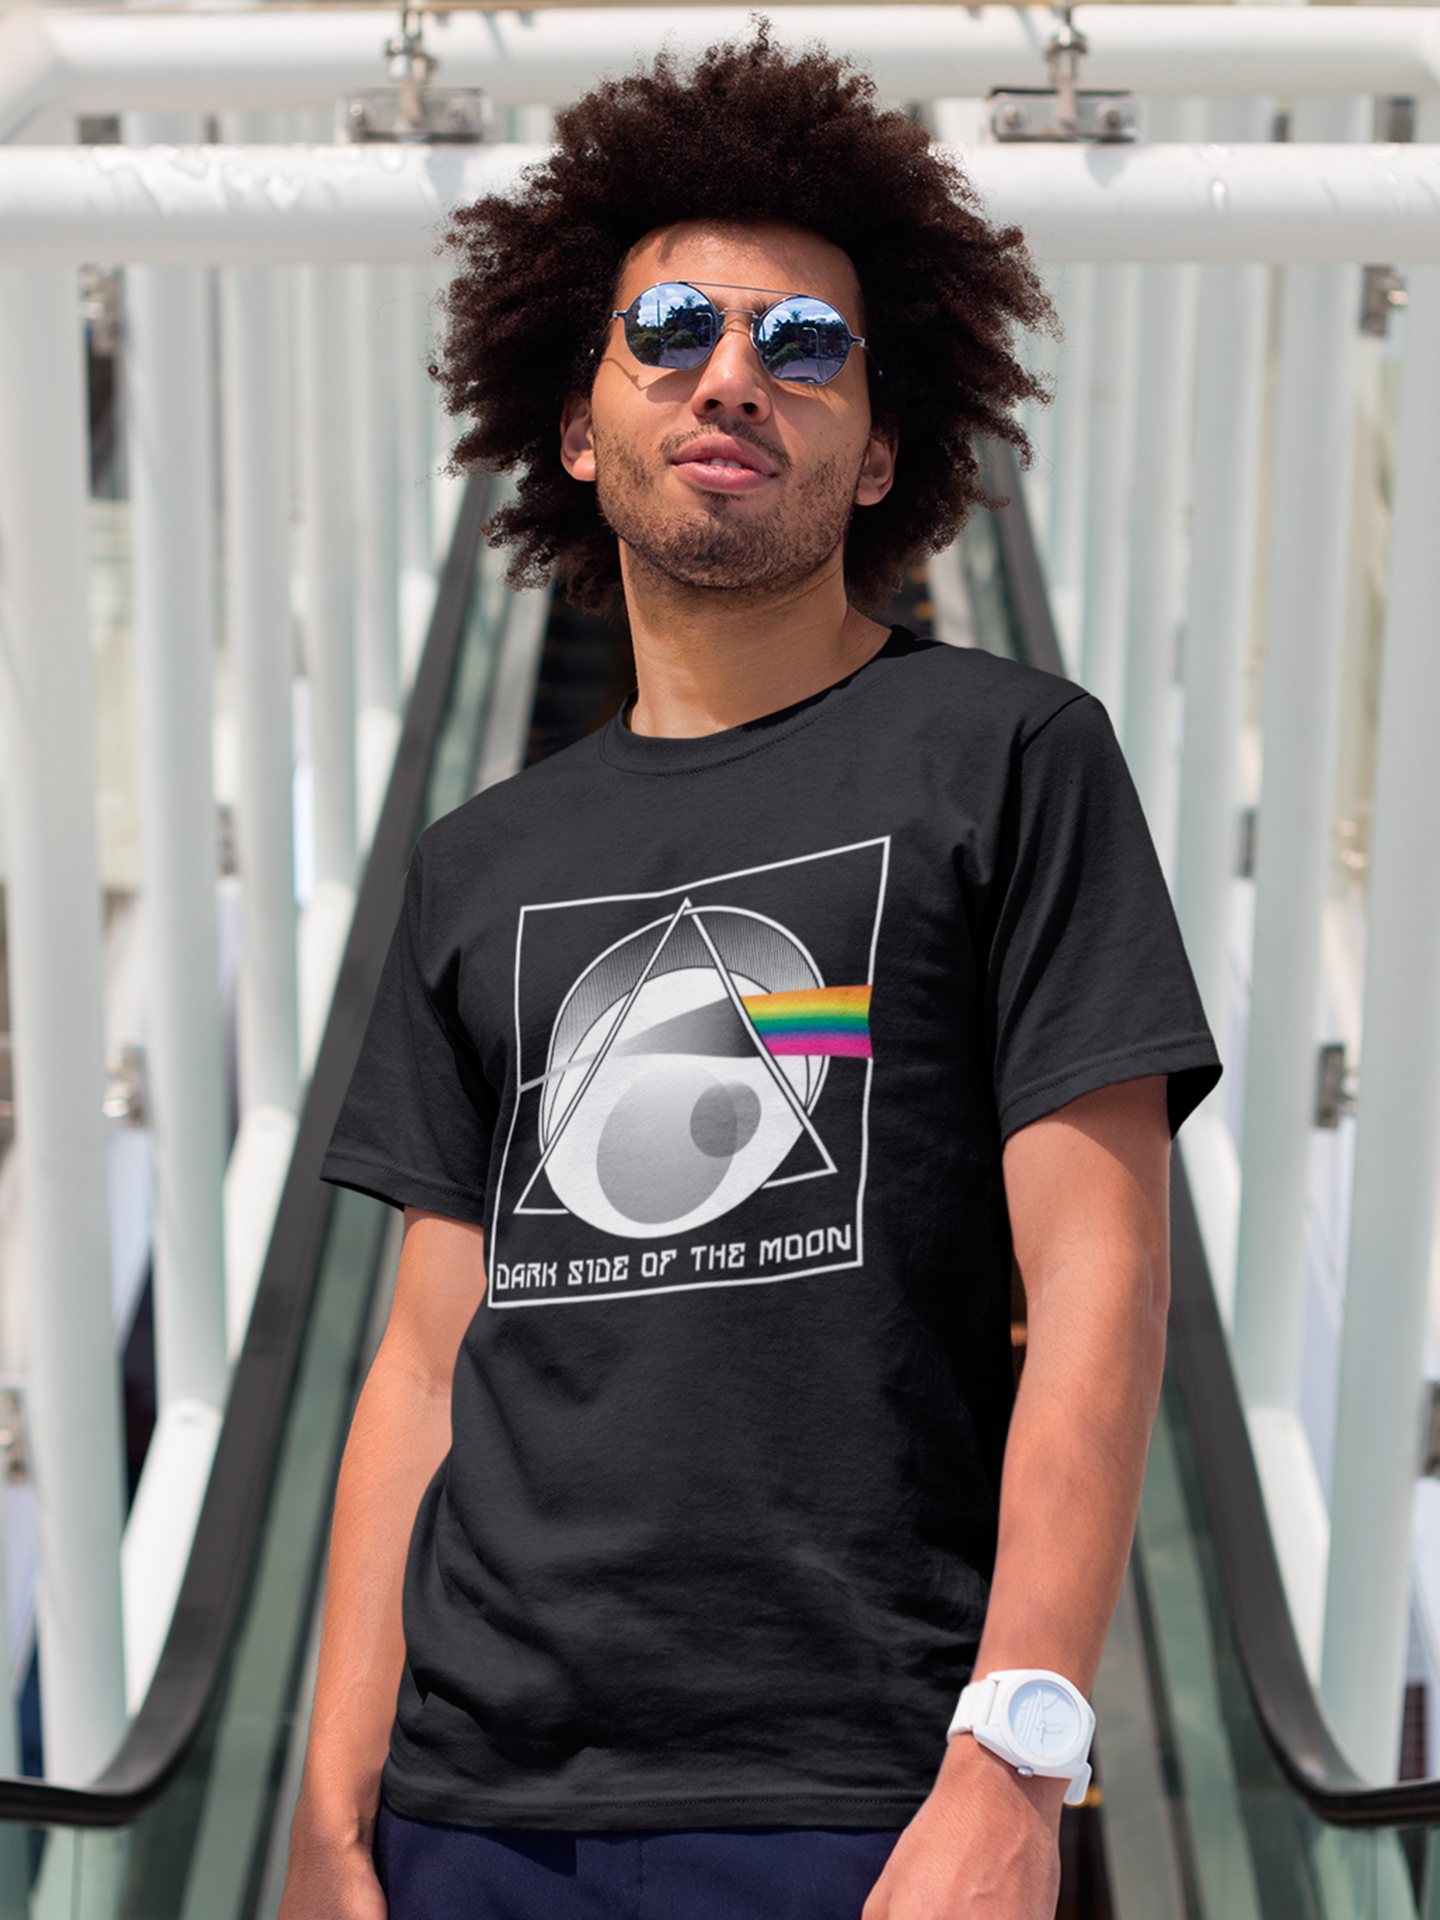 Poetic Justice The Dark Side Of The Moon T-shirt Inspired by Pink Floyd 1973